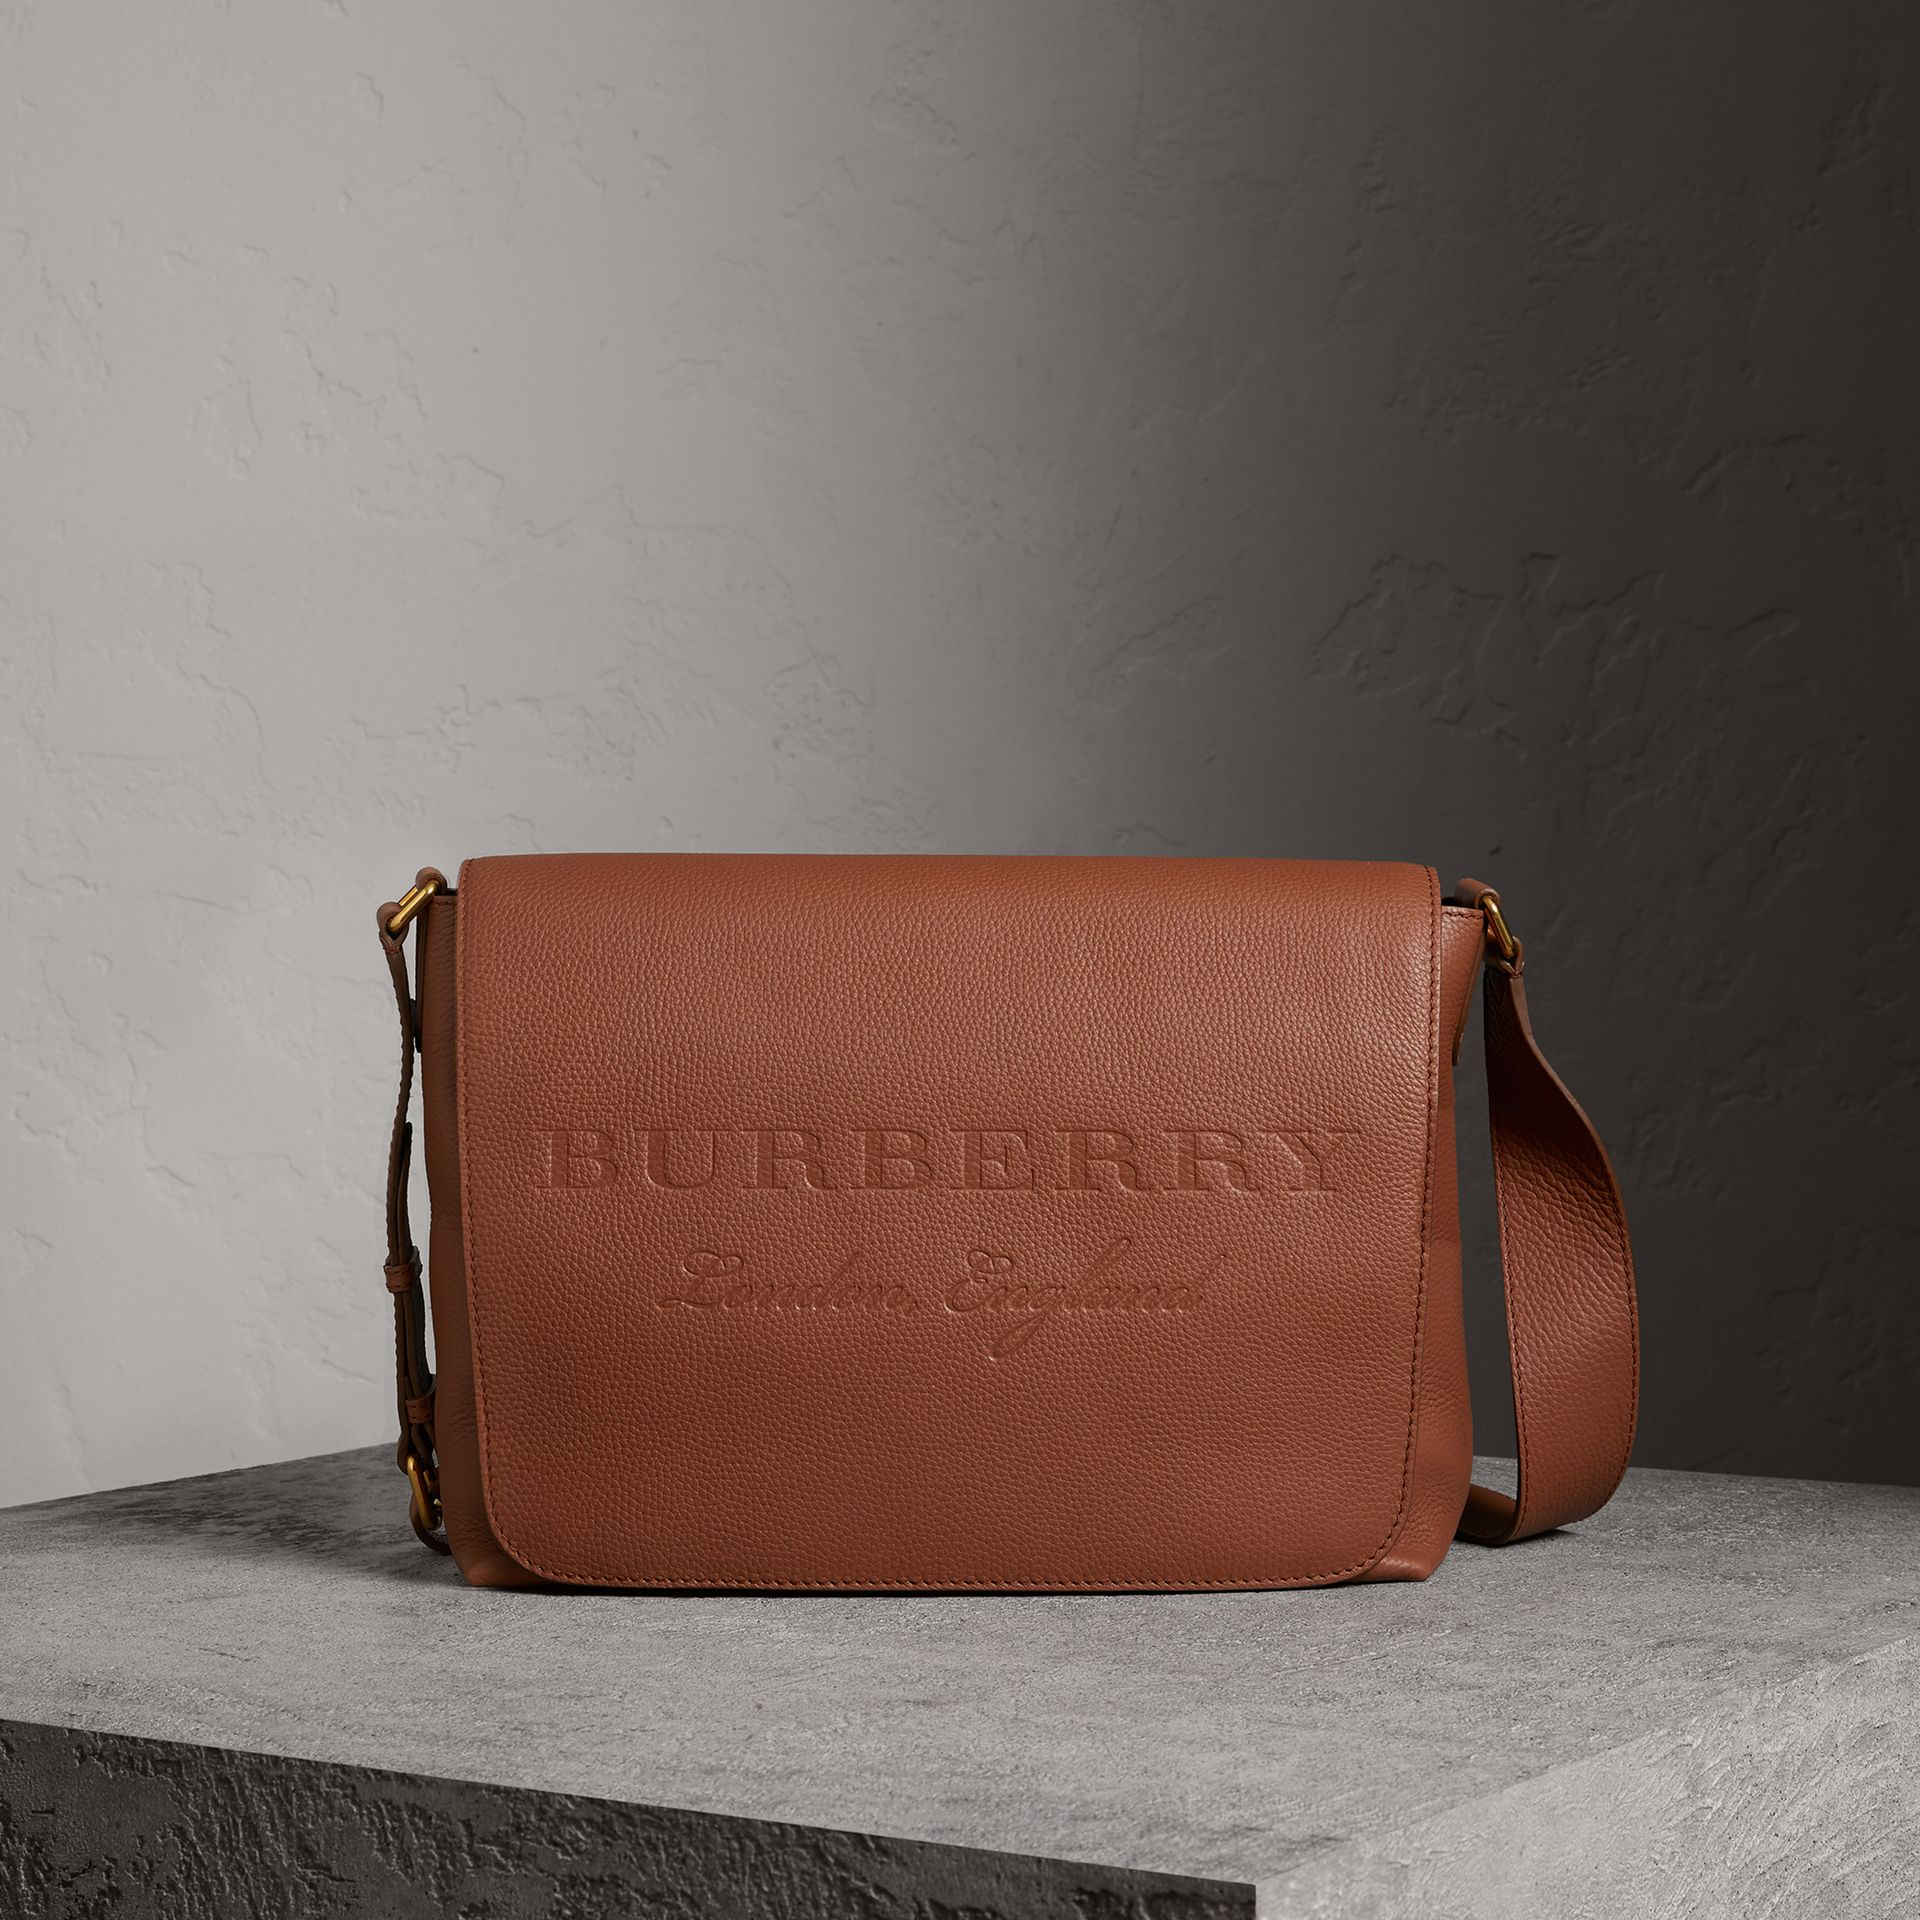 Grand sac Messenger en cuir estampé (Brun Noisette) | Burberry - photo de la galerie 0